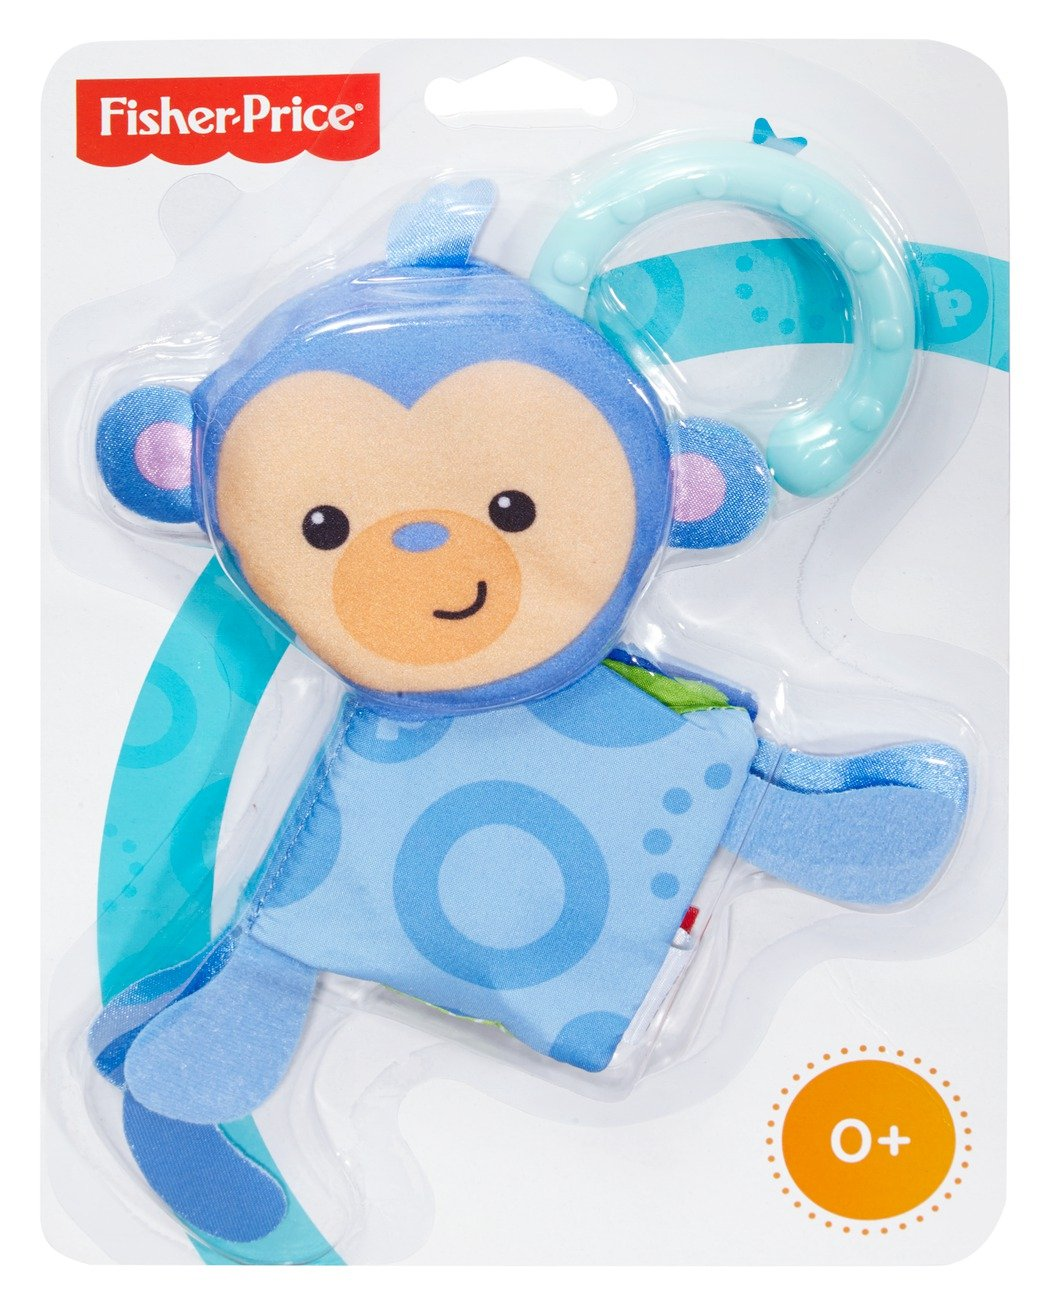 Fisher-Price - Cbh87 - Rattle - Pequeño Mono - Libros XL